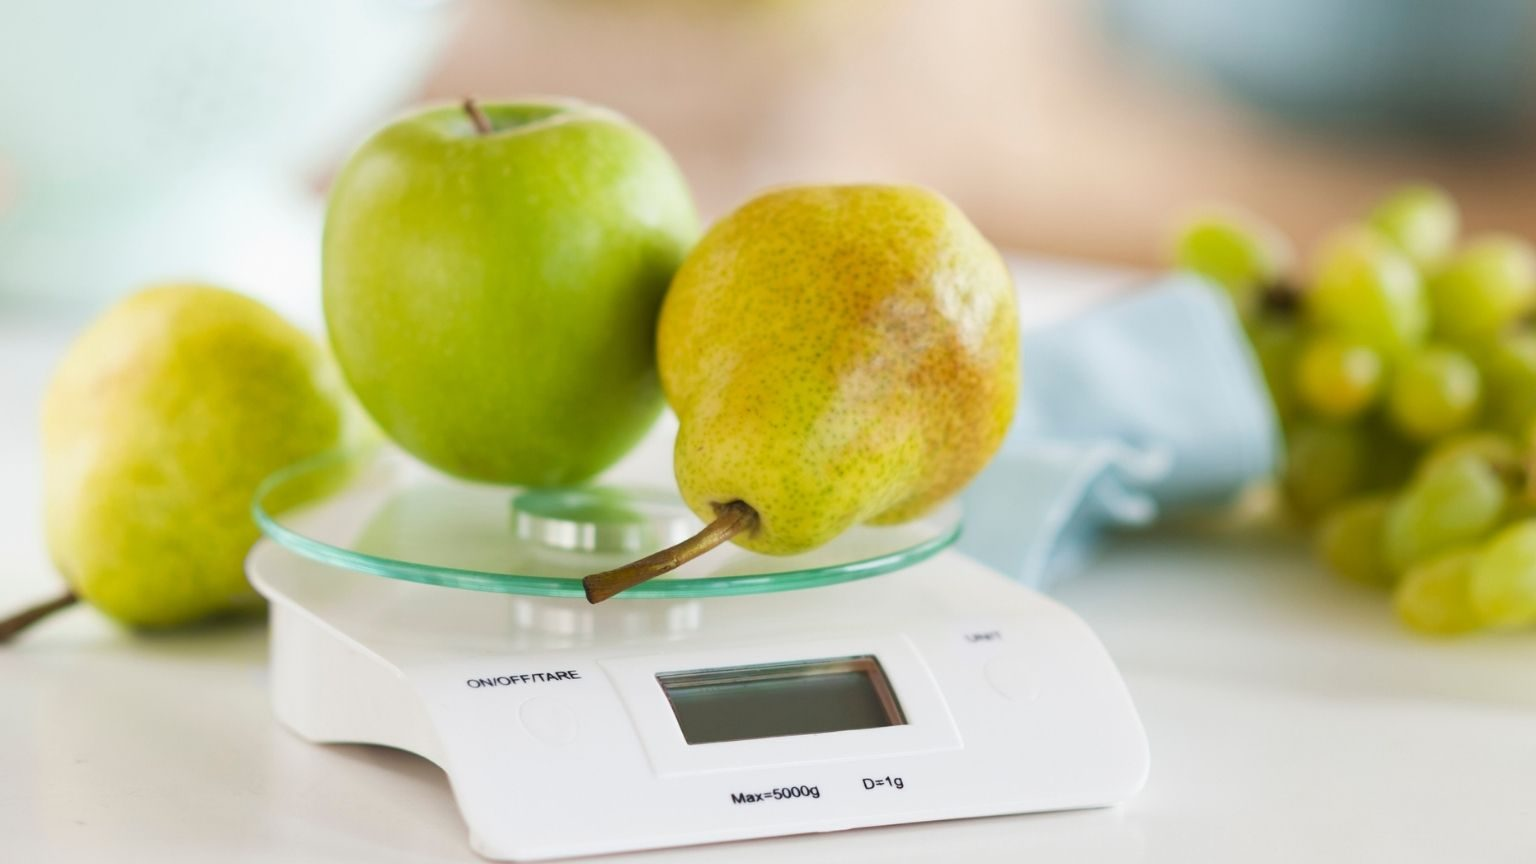 fresh fruits on weight scale